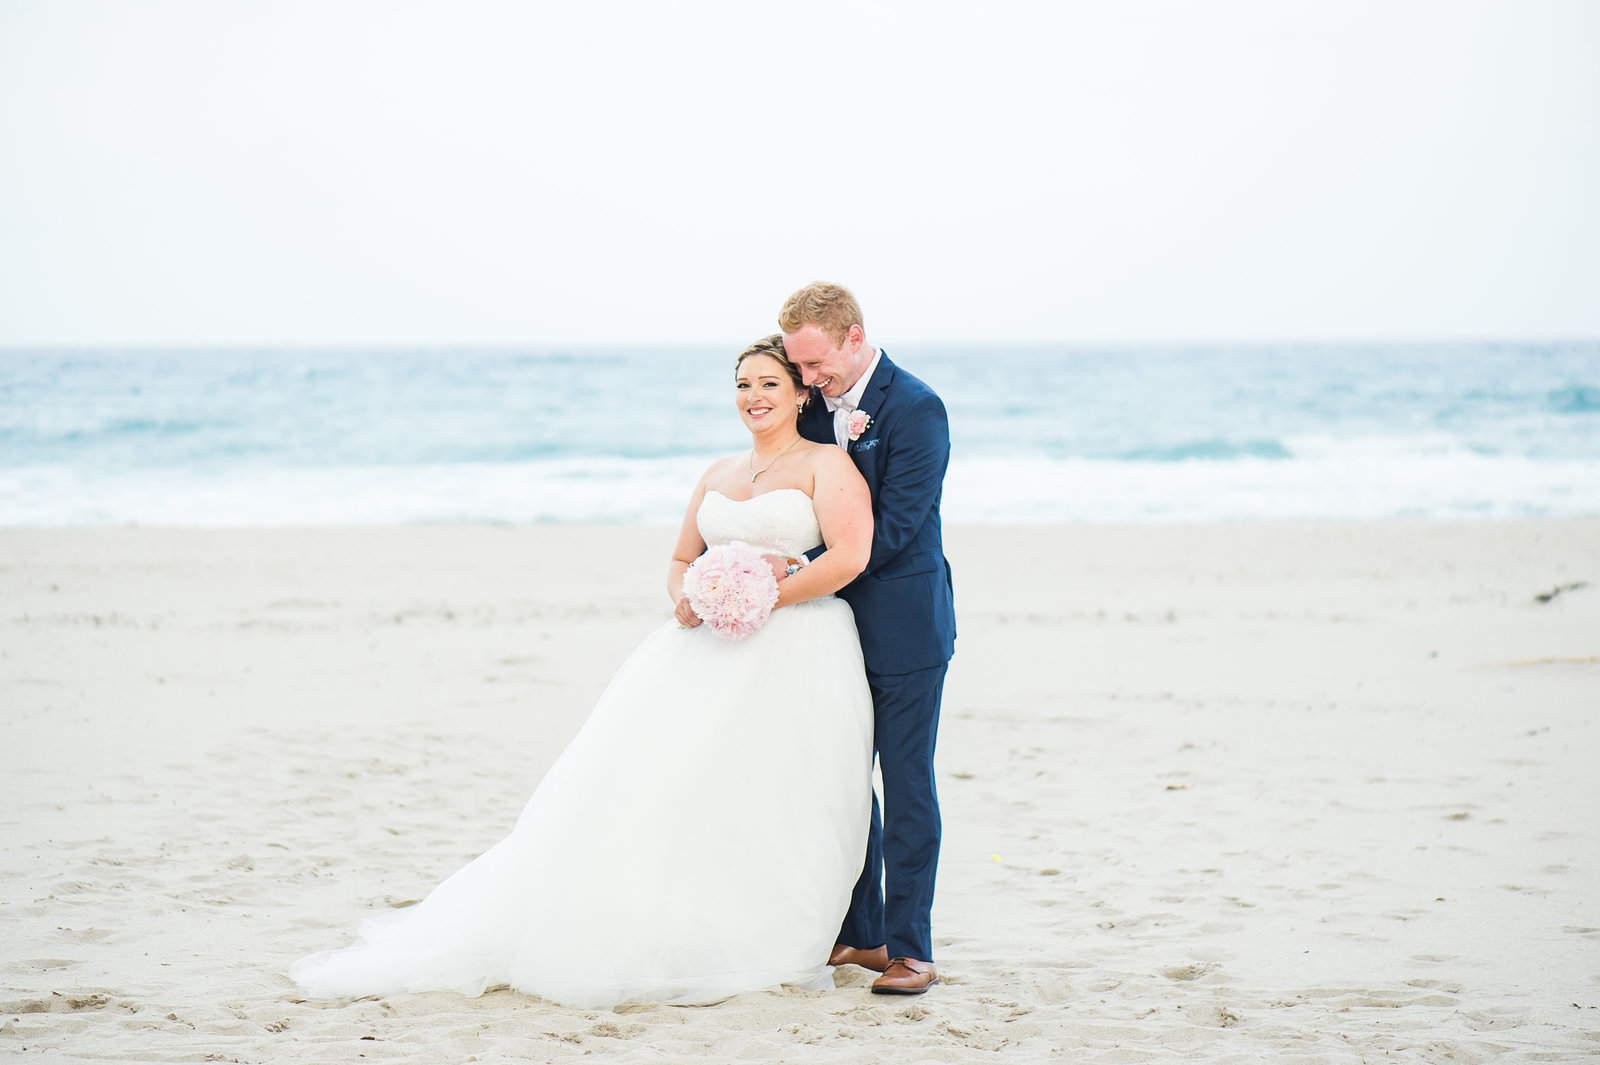 Wedding Photography in West Palm Beach